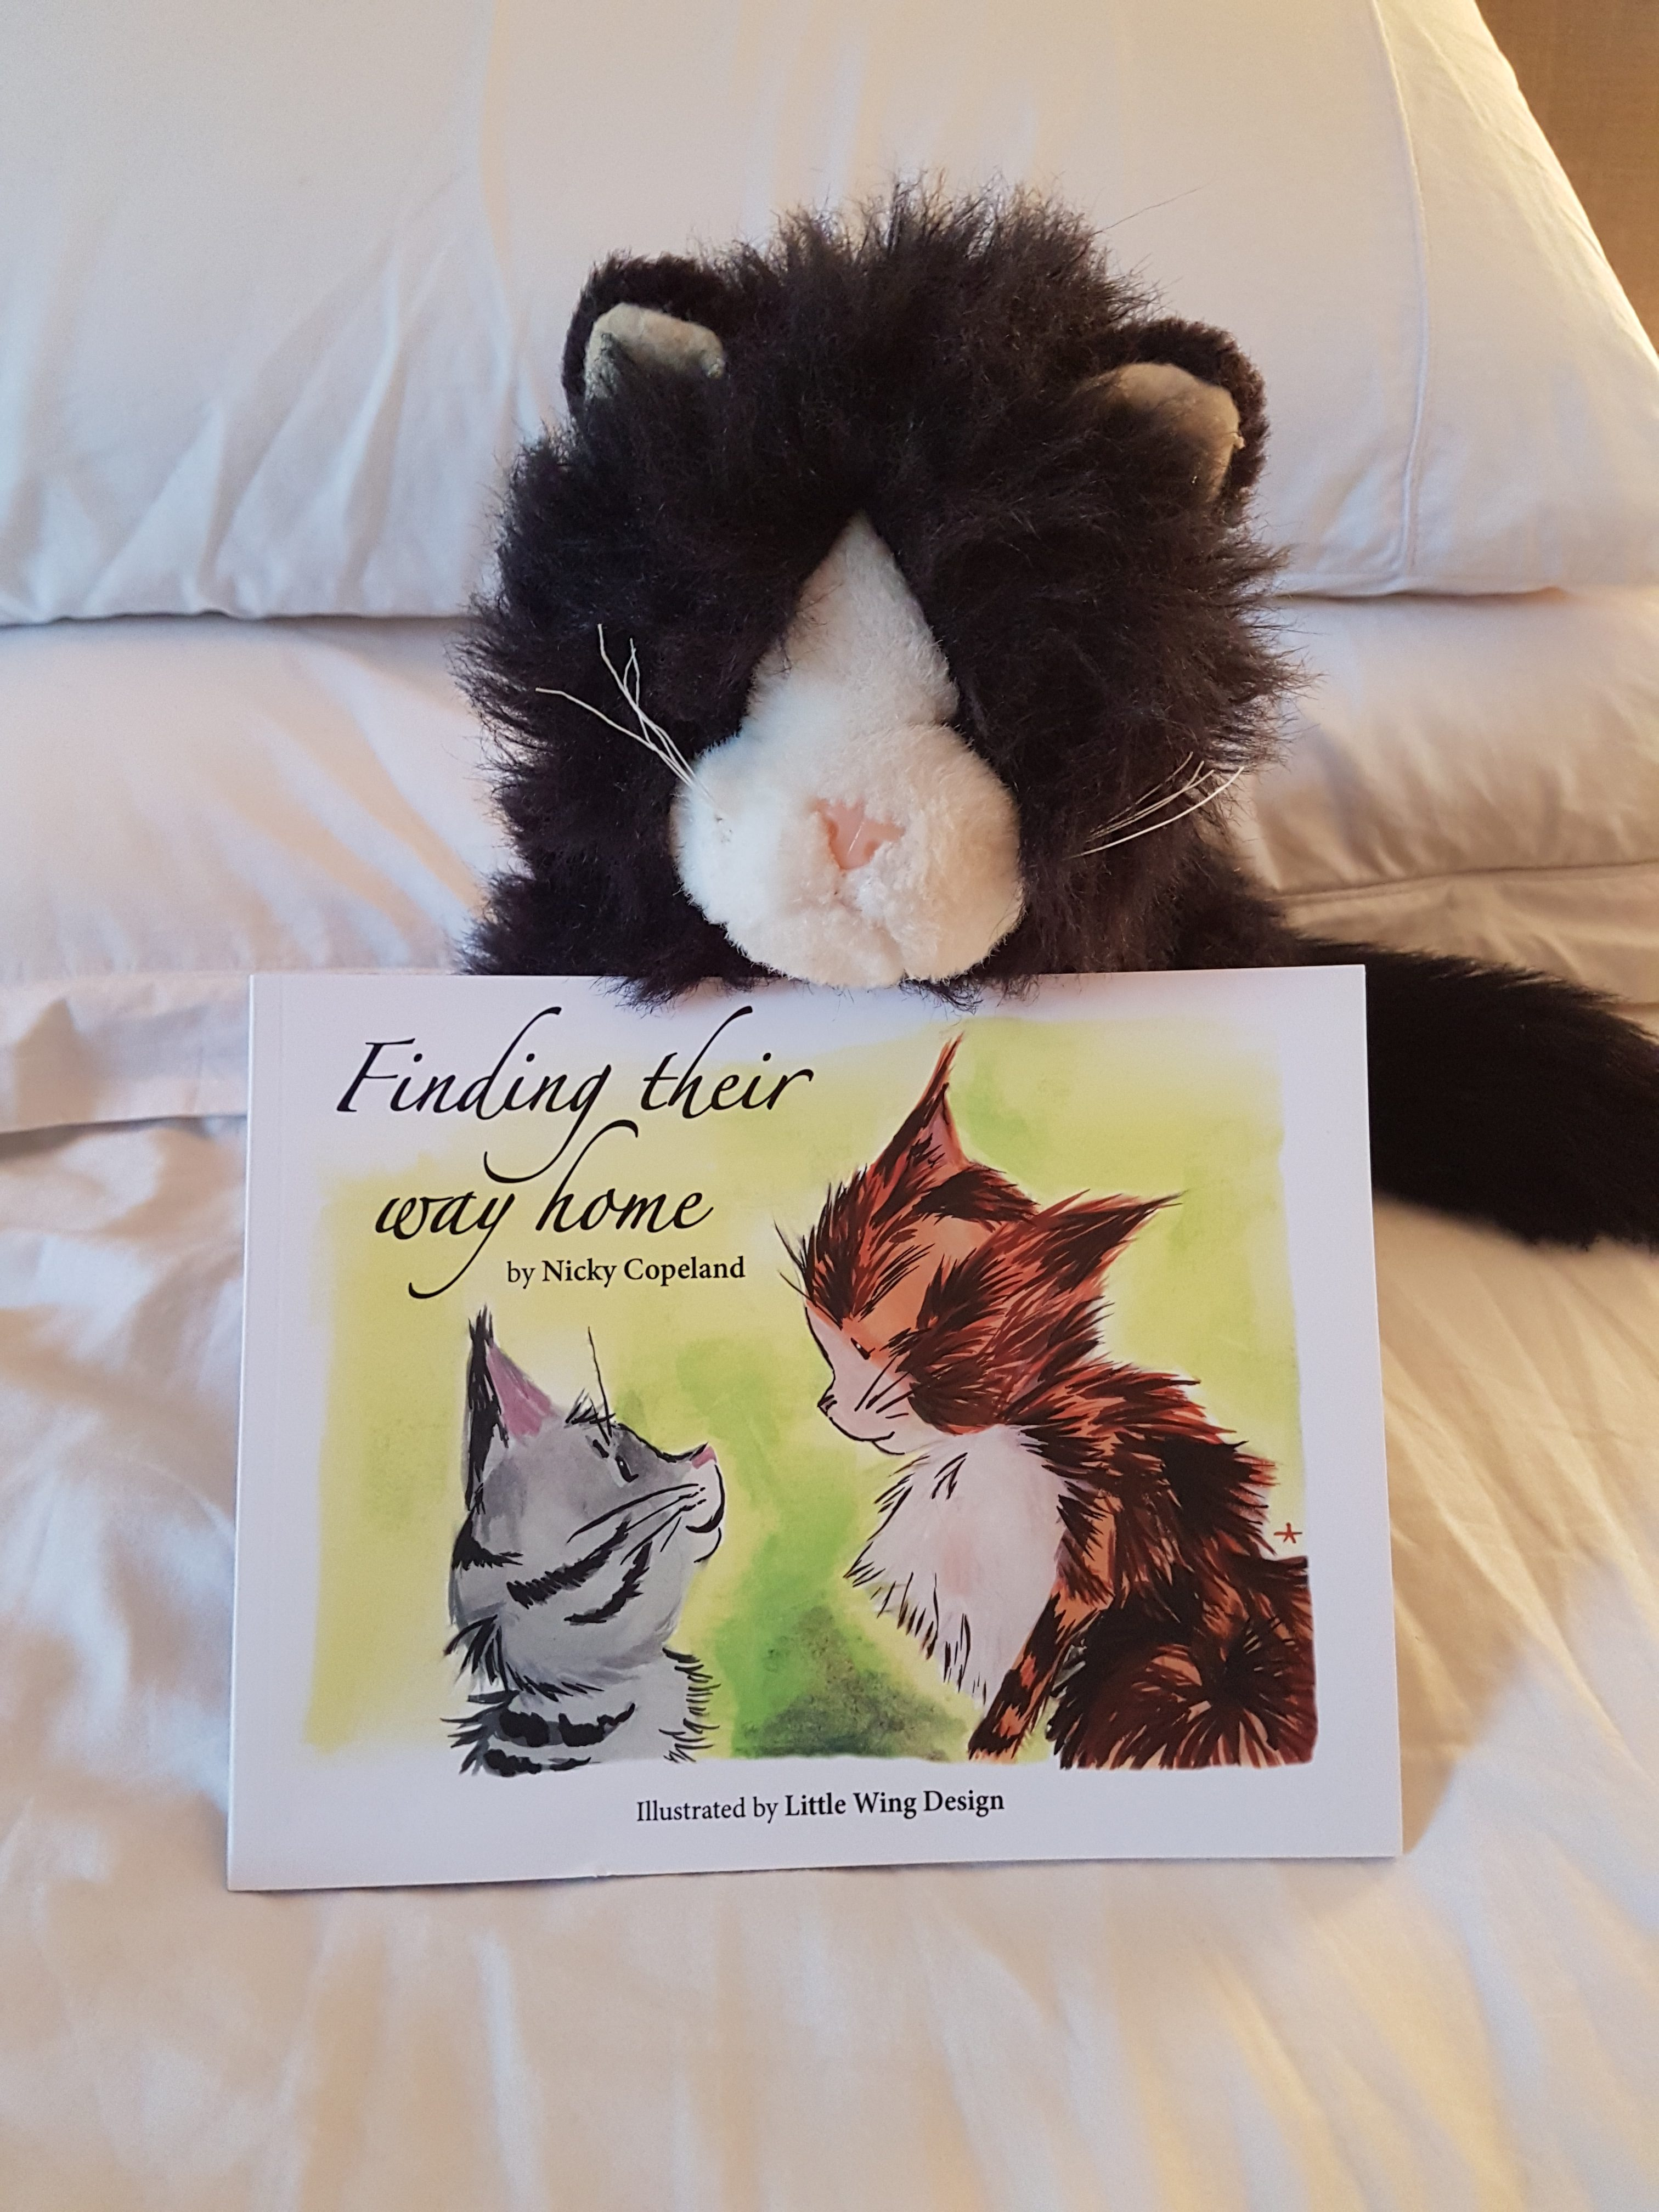 cat soft toy holding Finding Their Way Home book